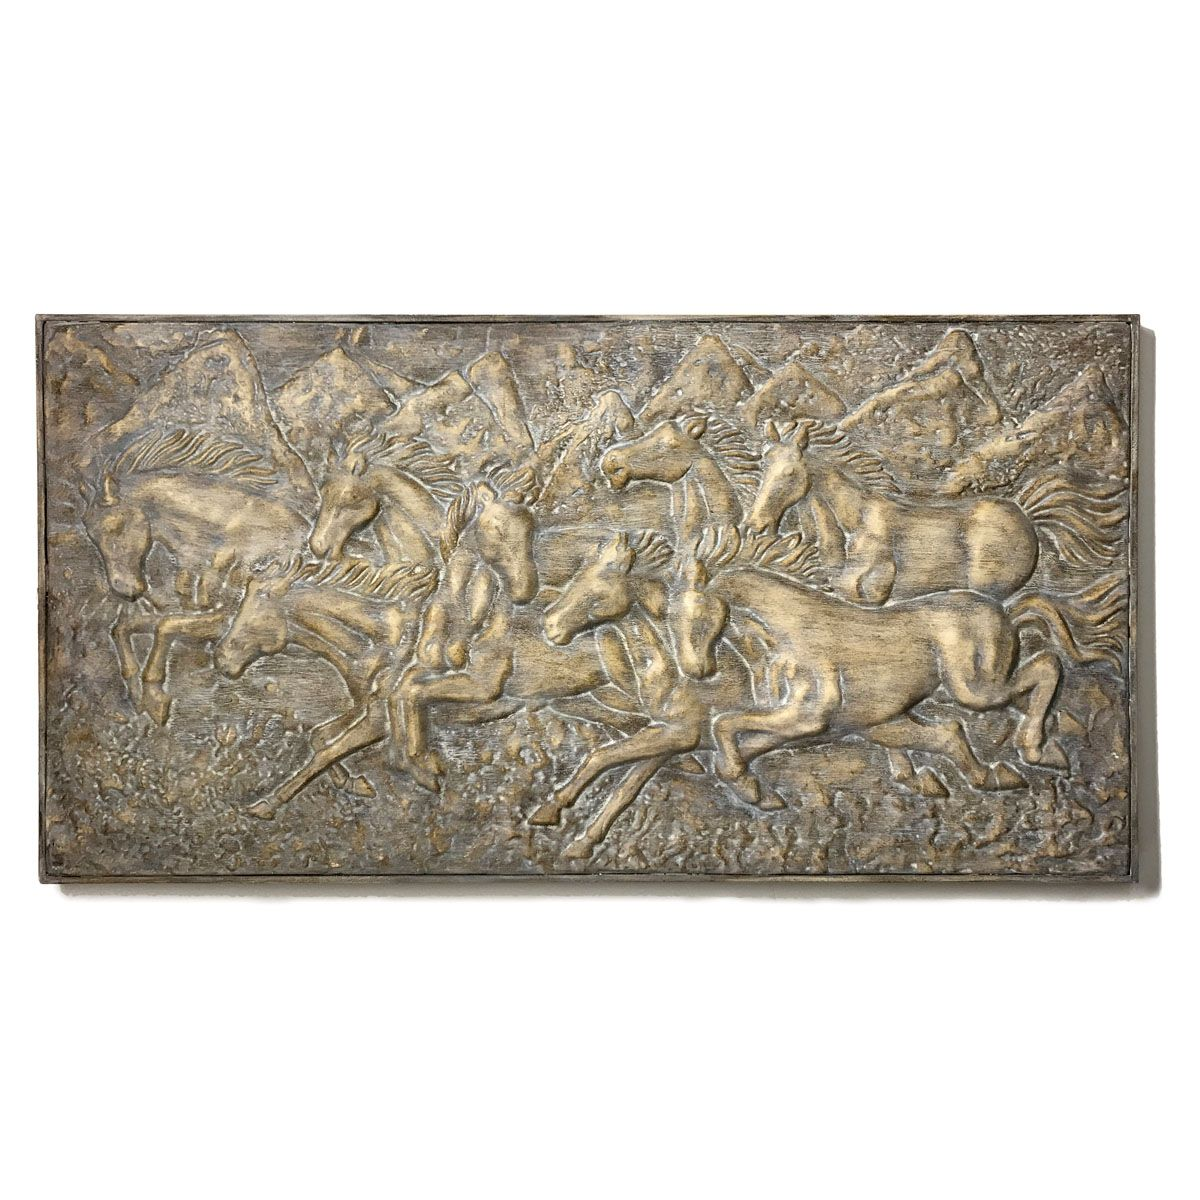 Mountain Run Horse Wall Plaque - Stonewash